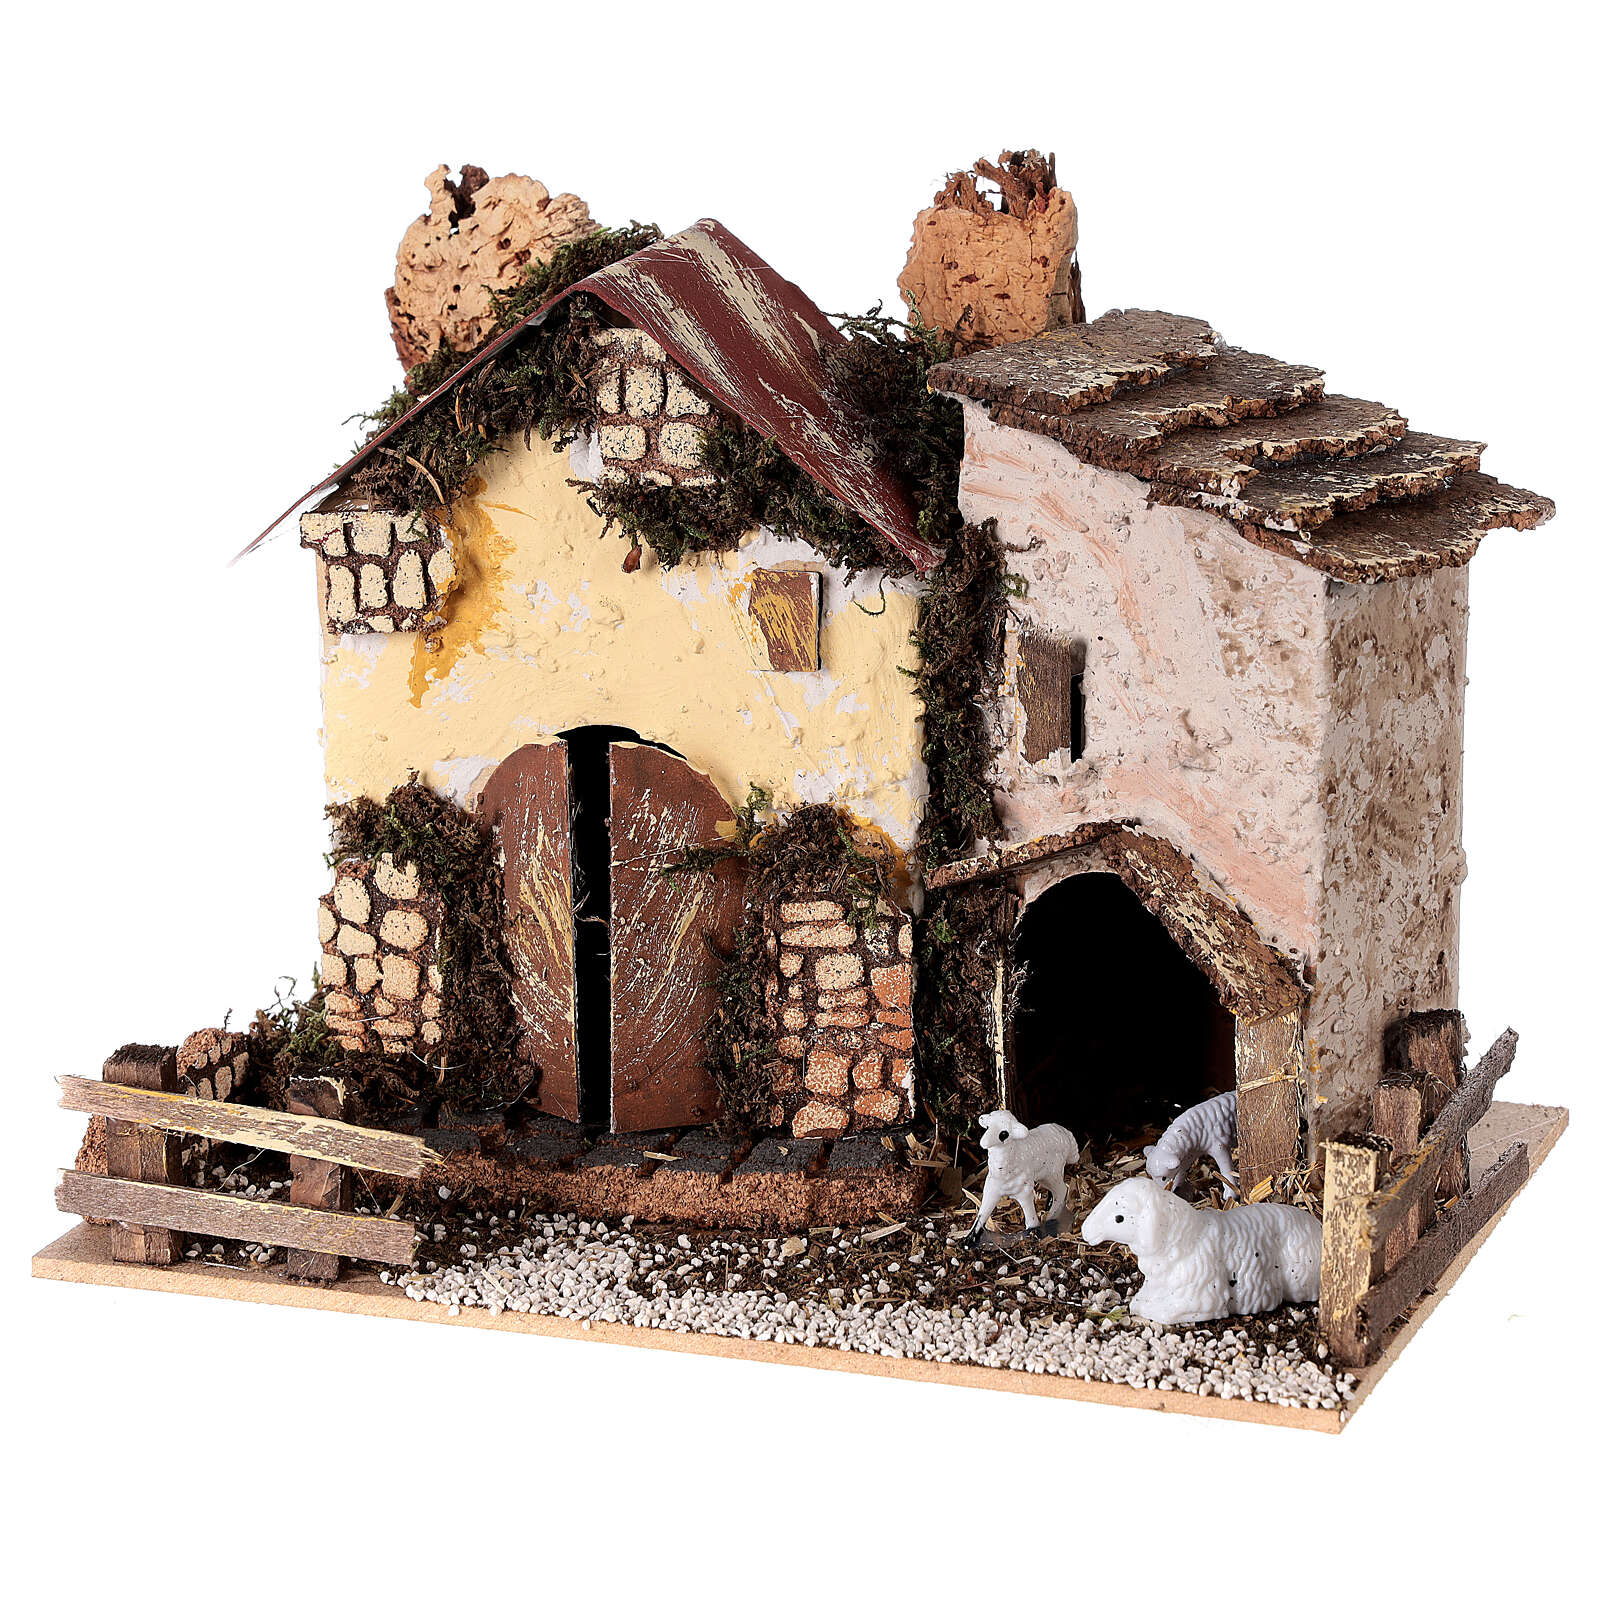 Cottage with sheep 15x20x15 cm for Nativity scene 8-10 cm 4